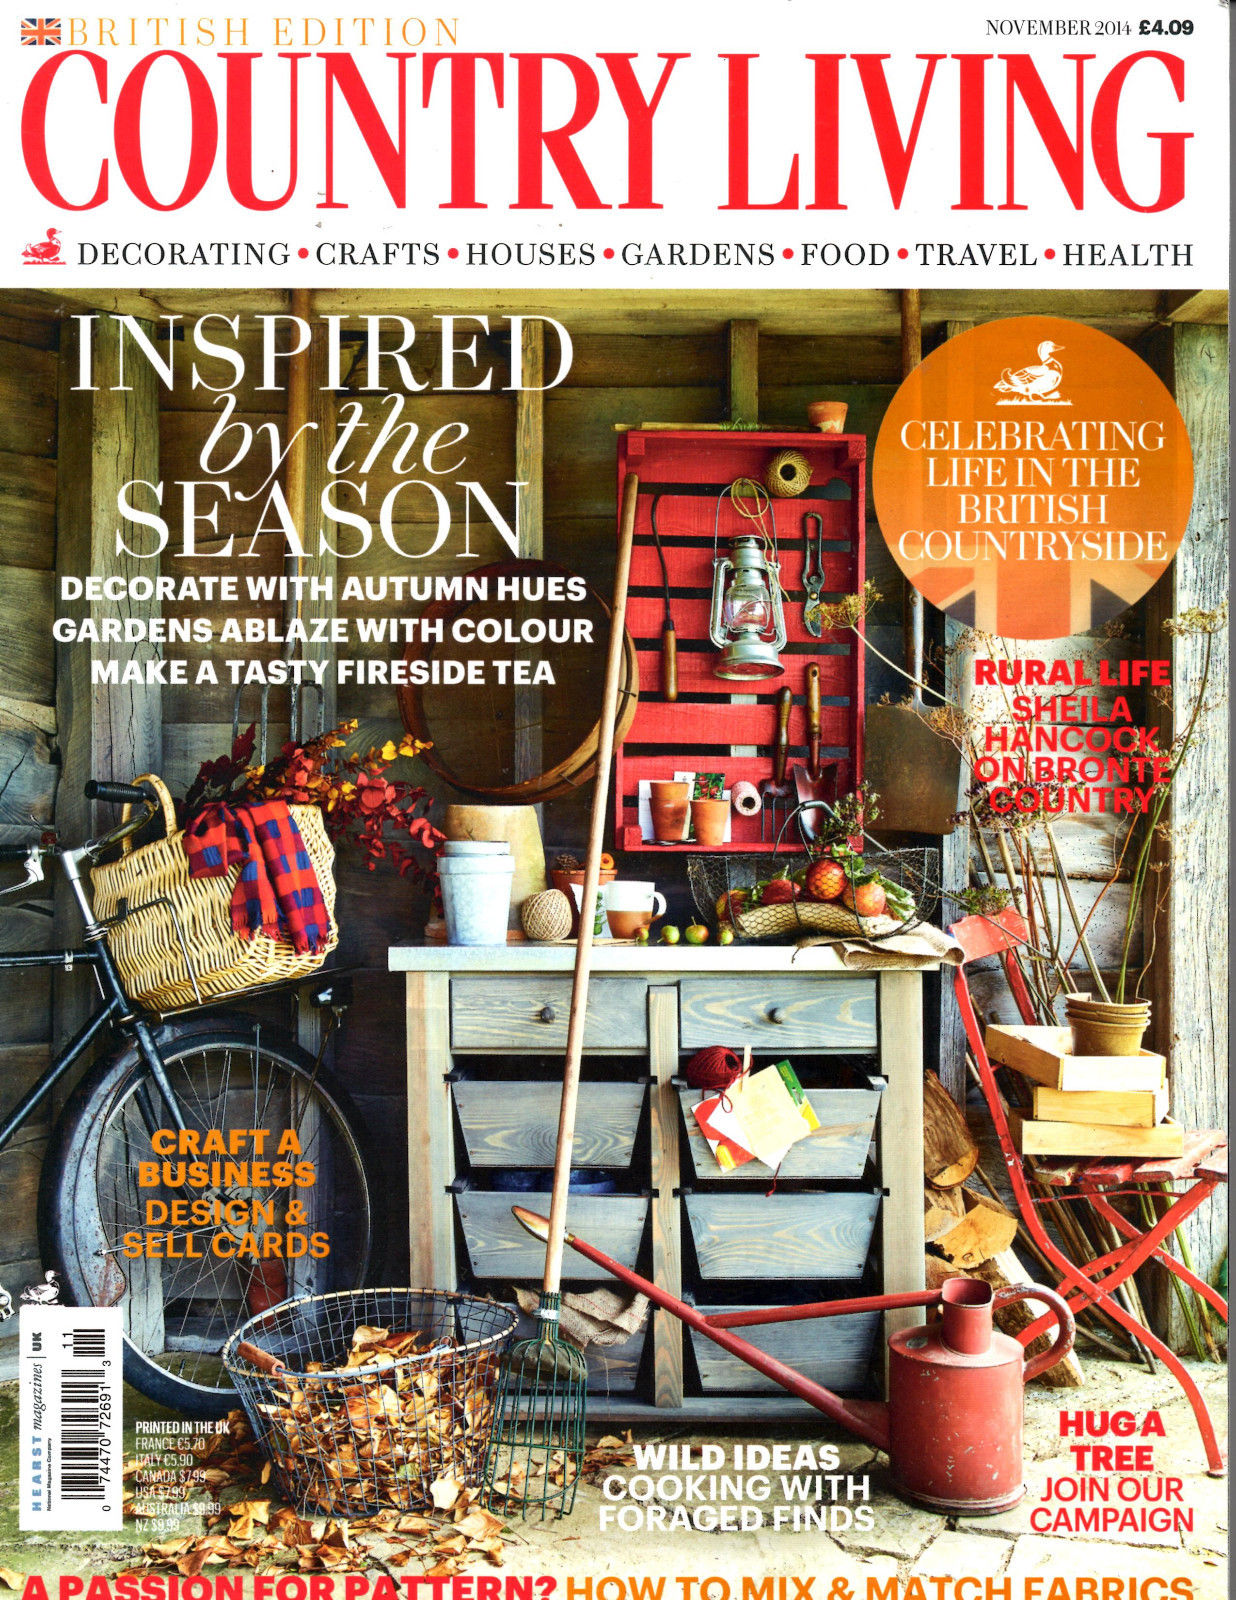 Top 10 Garden Magazines Gardening Learning With Experts